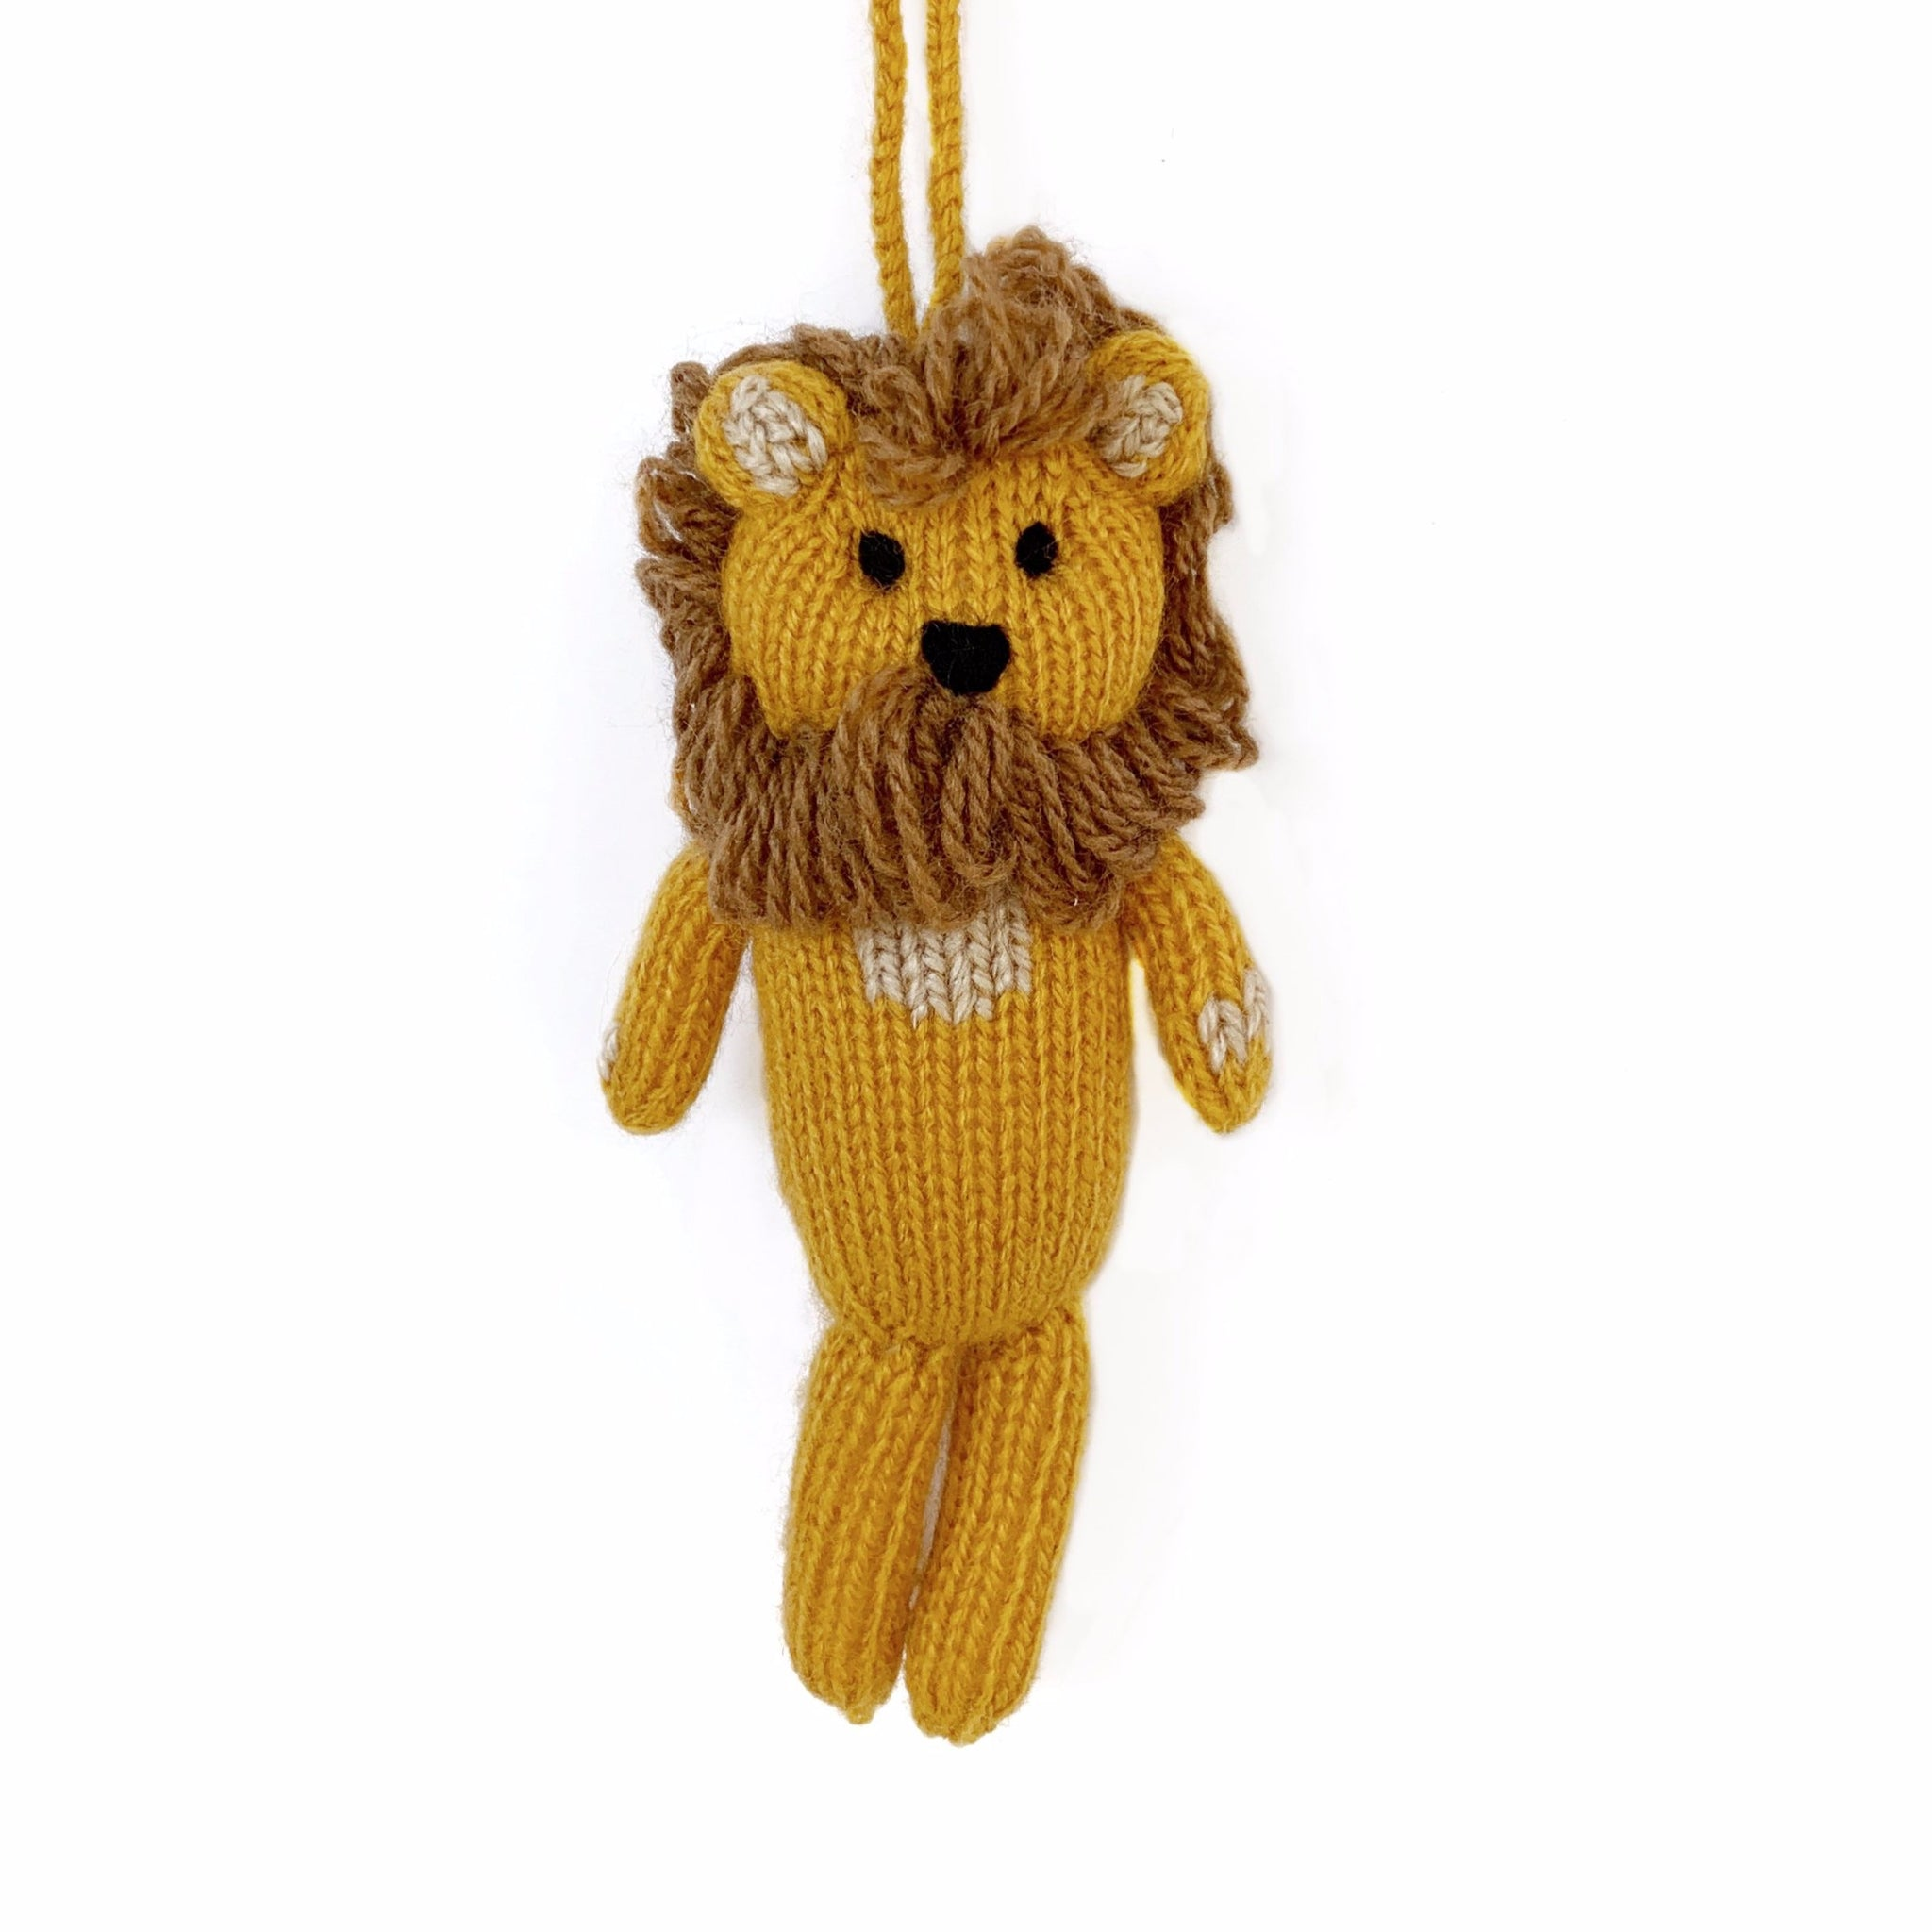 Knit Lion Ornament Fair Trade Christmas